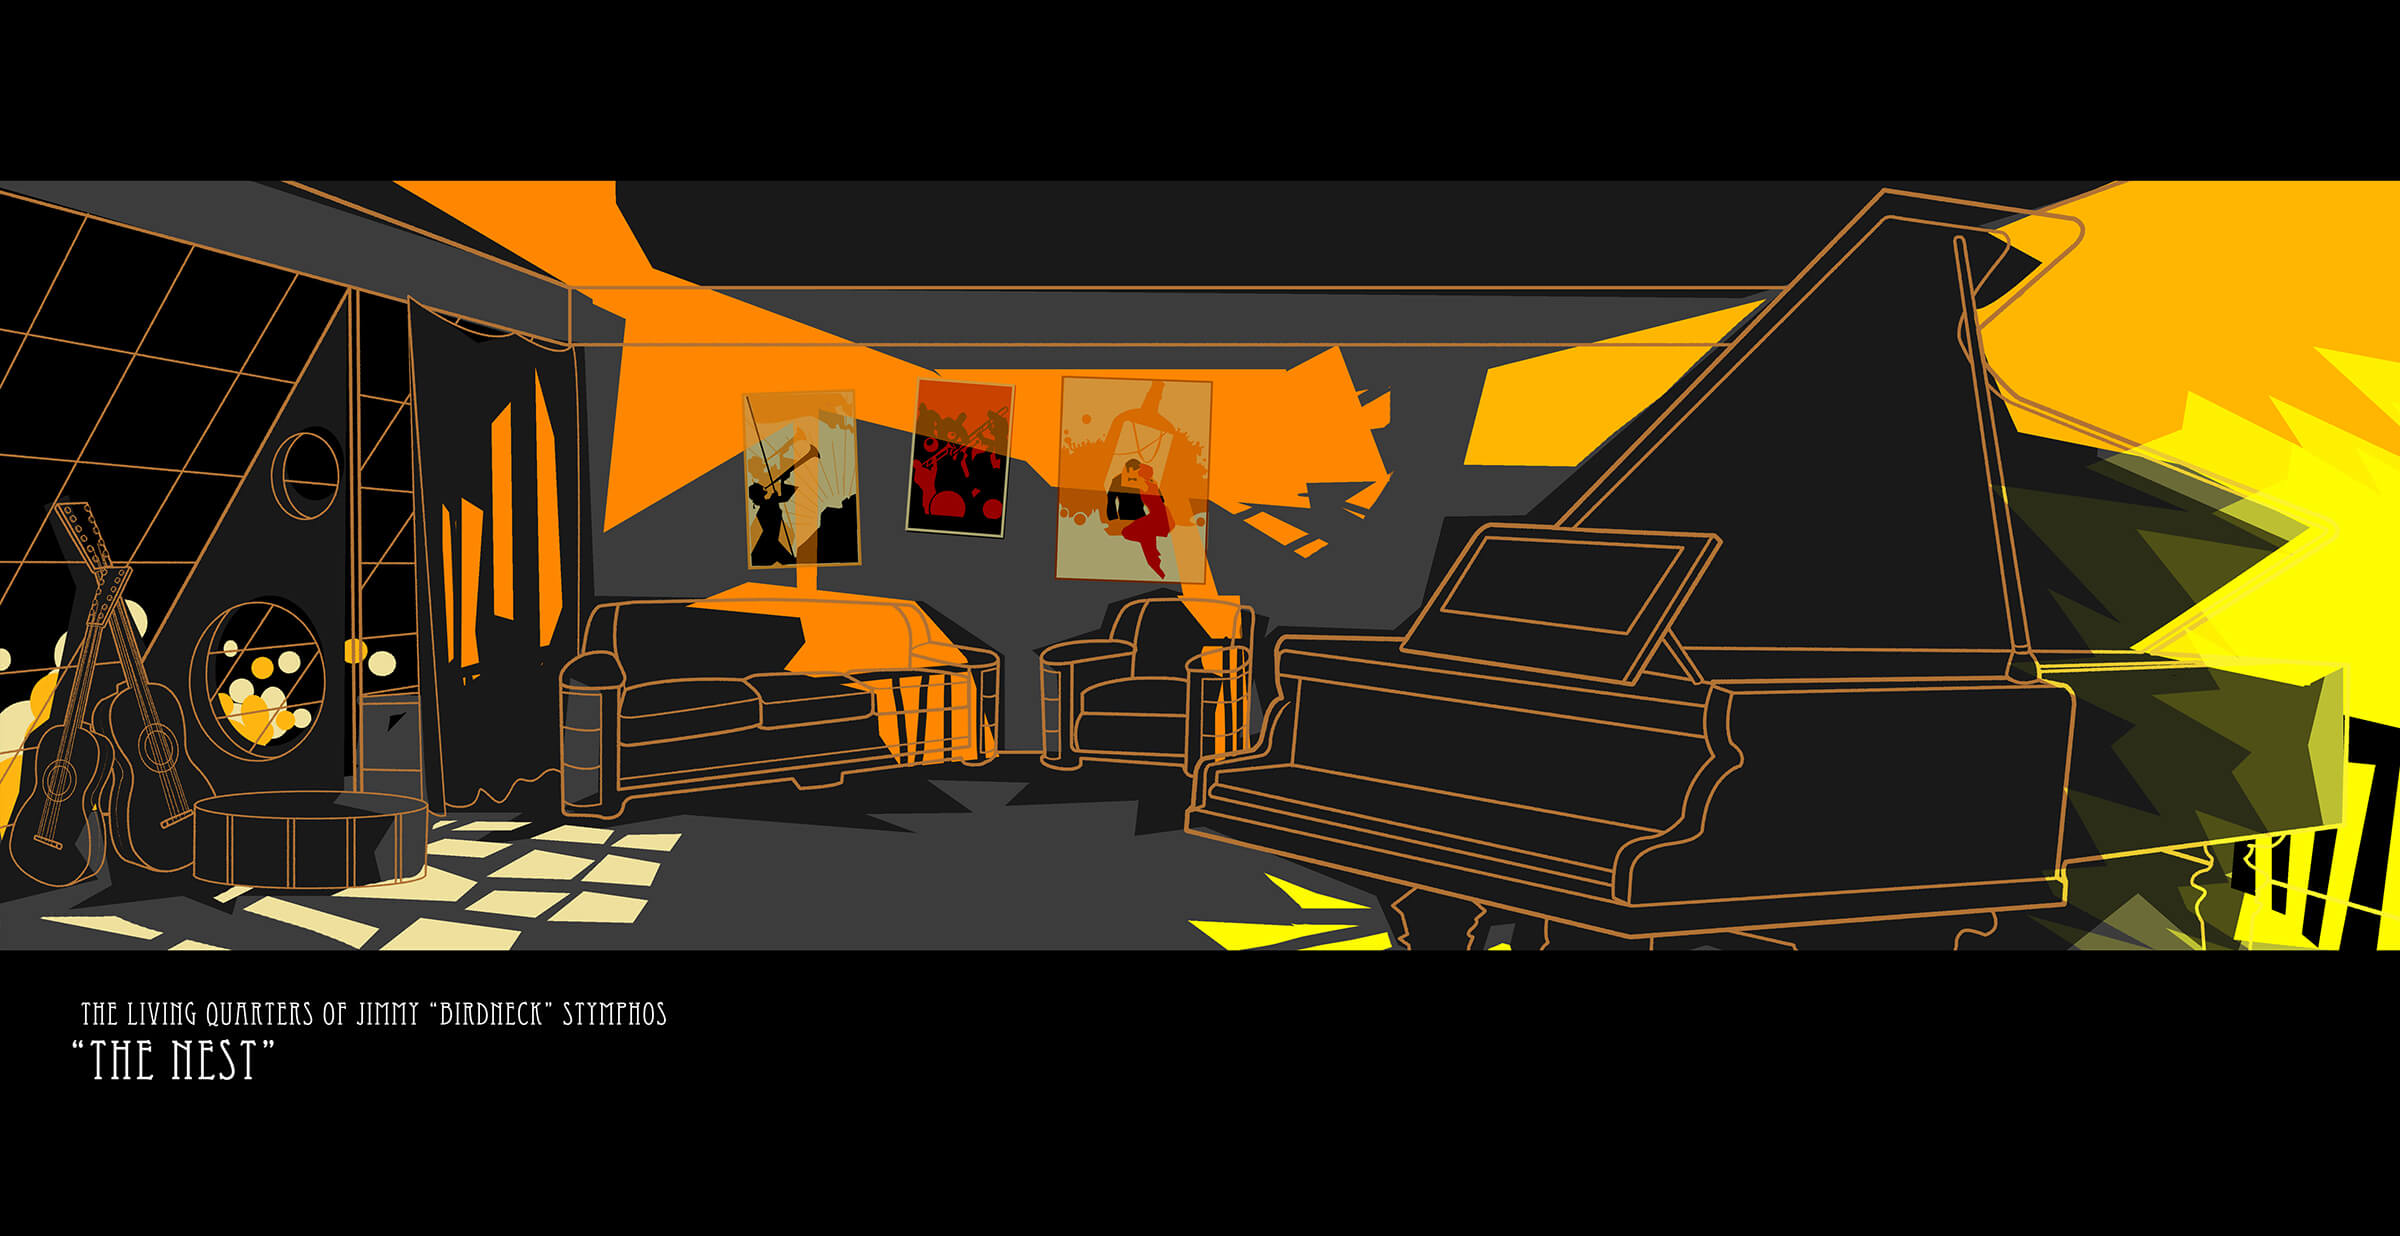 Jazz-era living room shaded stylistically in oranges, blacks, and yellows featuring a grand piano, couches, and guitars.